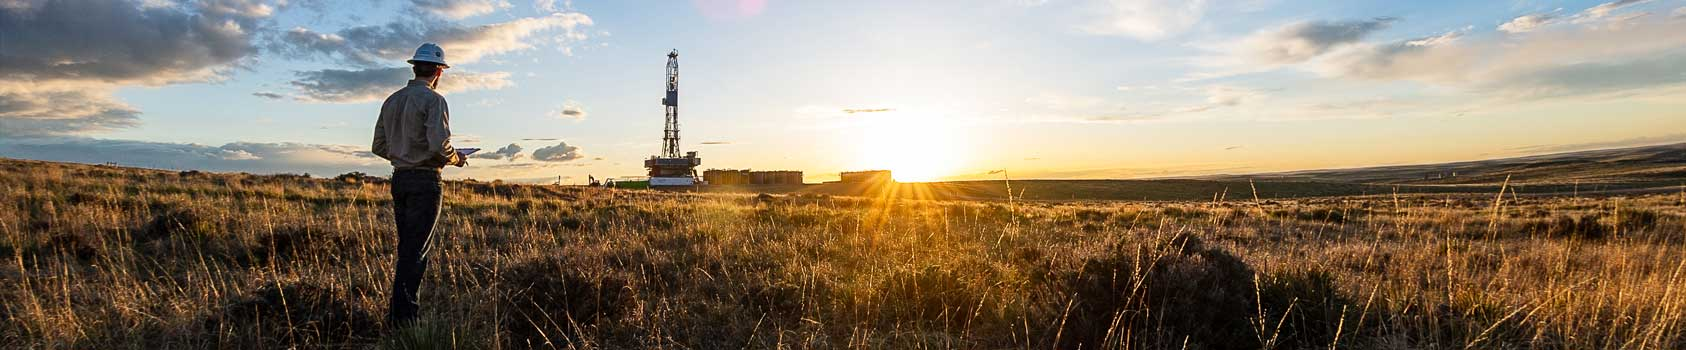 oil worker in sunny field